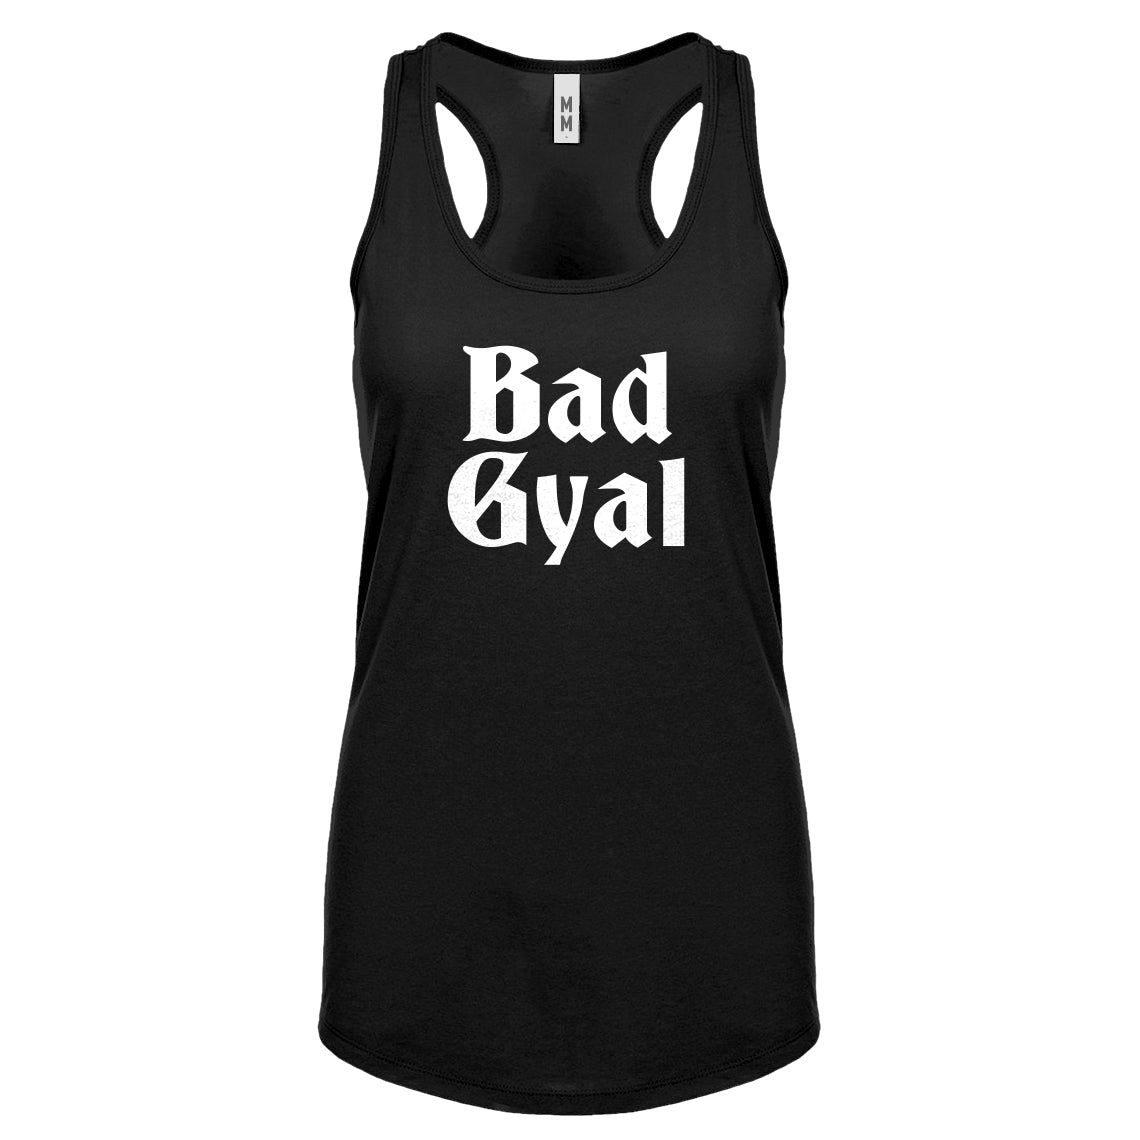 Bad Gyal Womens Racerback Tank Top